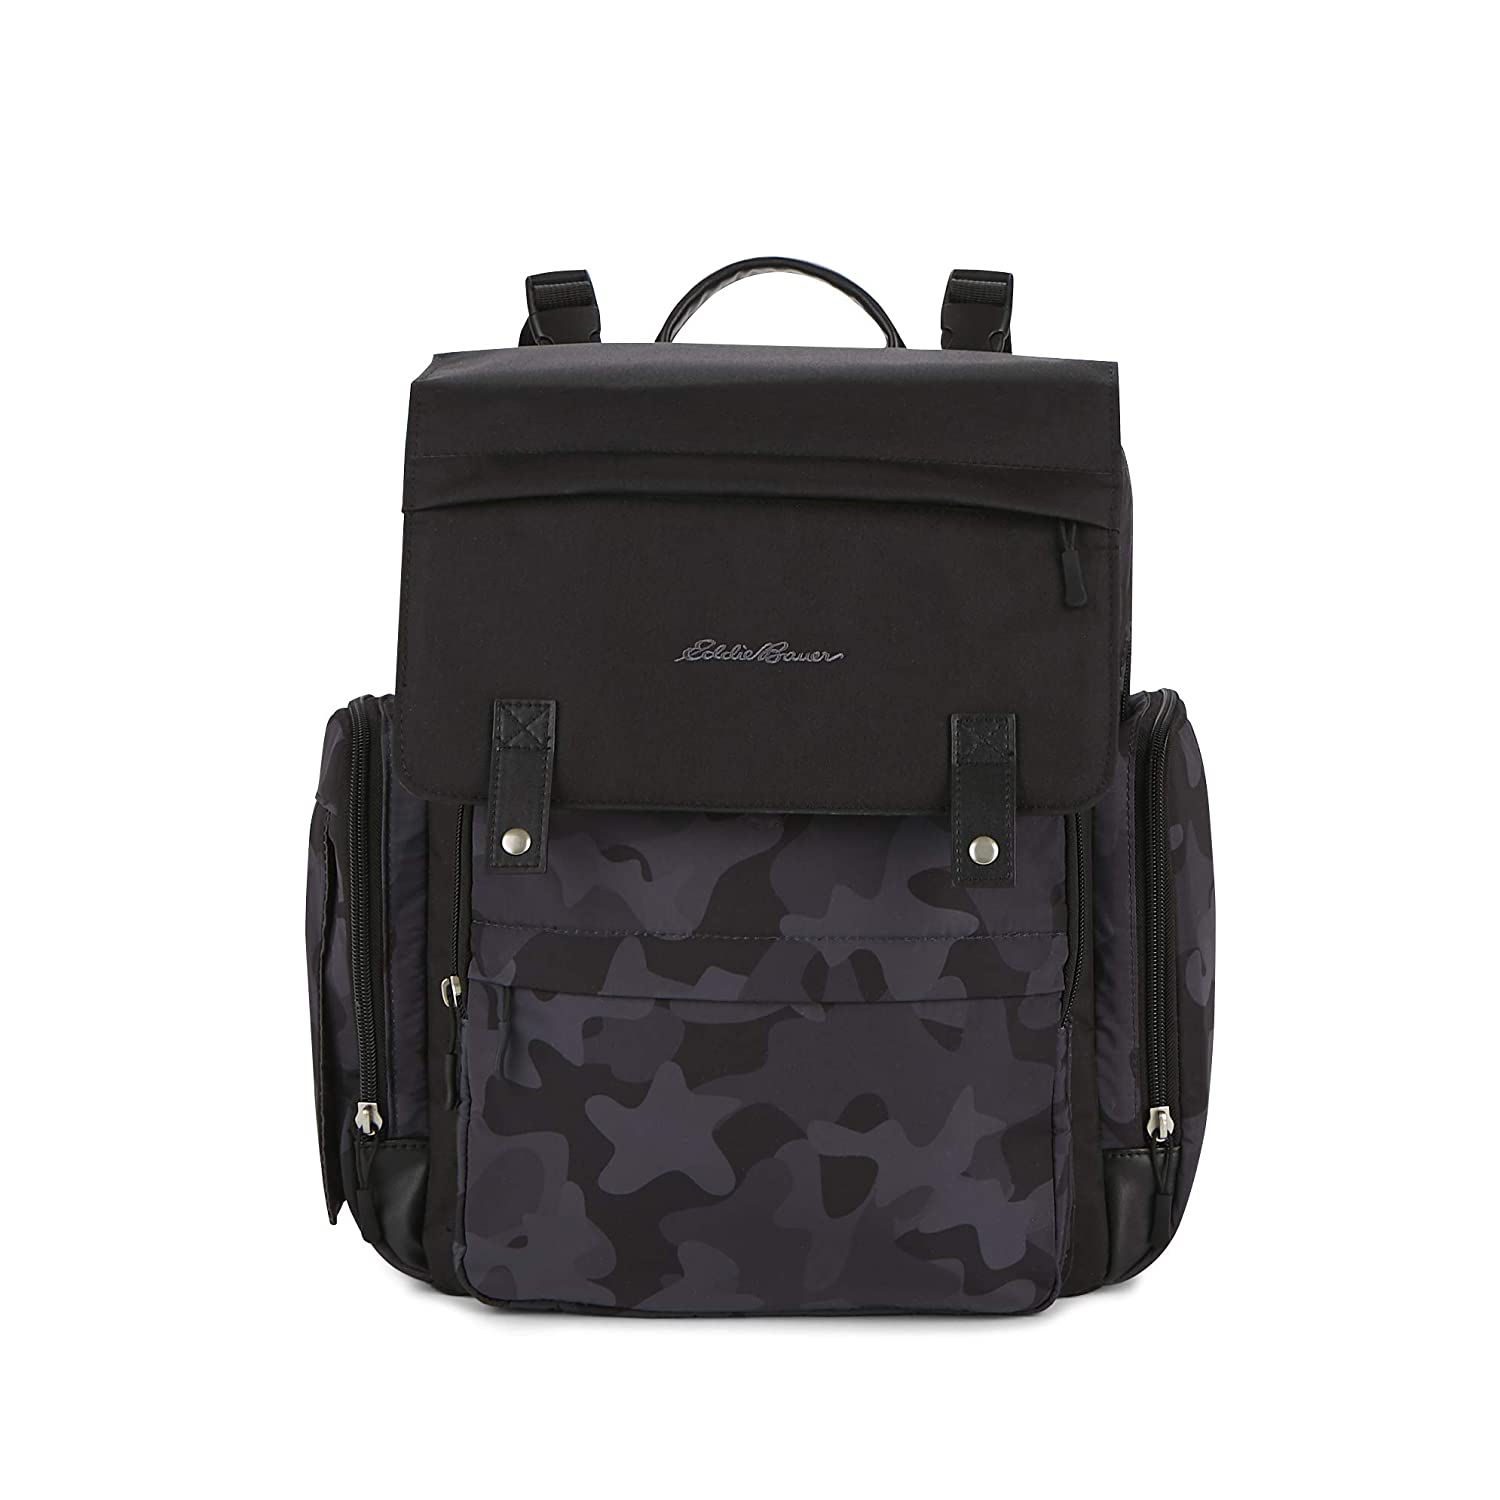 Eddie Bauer Places & Spaces Compass Diaper Bag Backpack